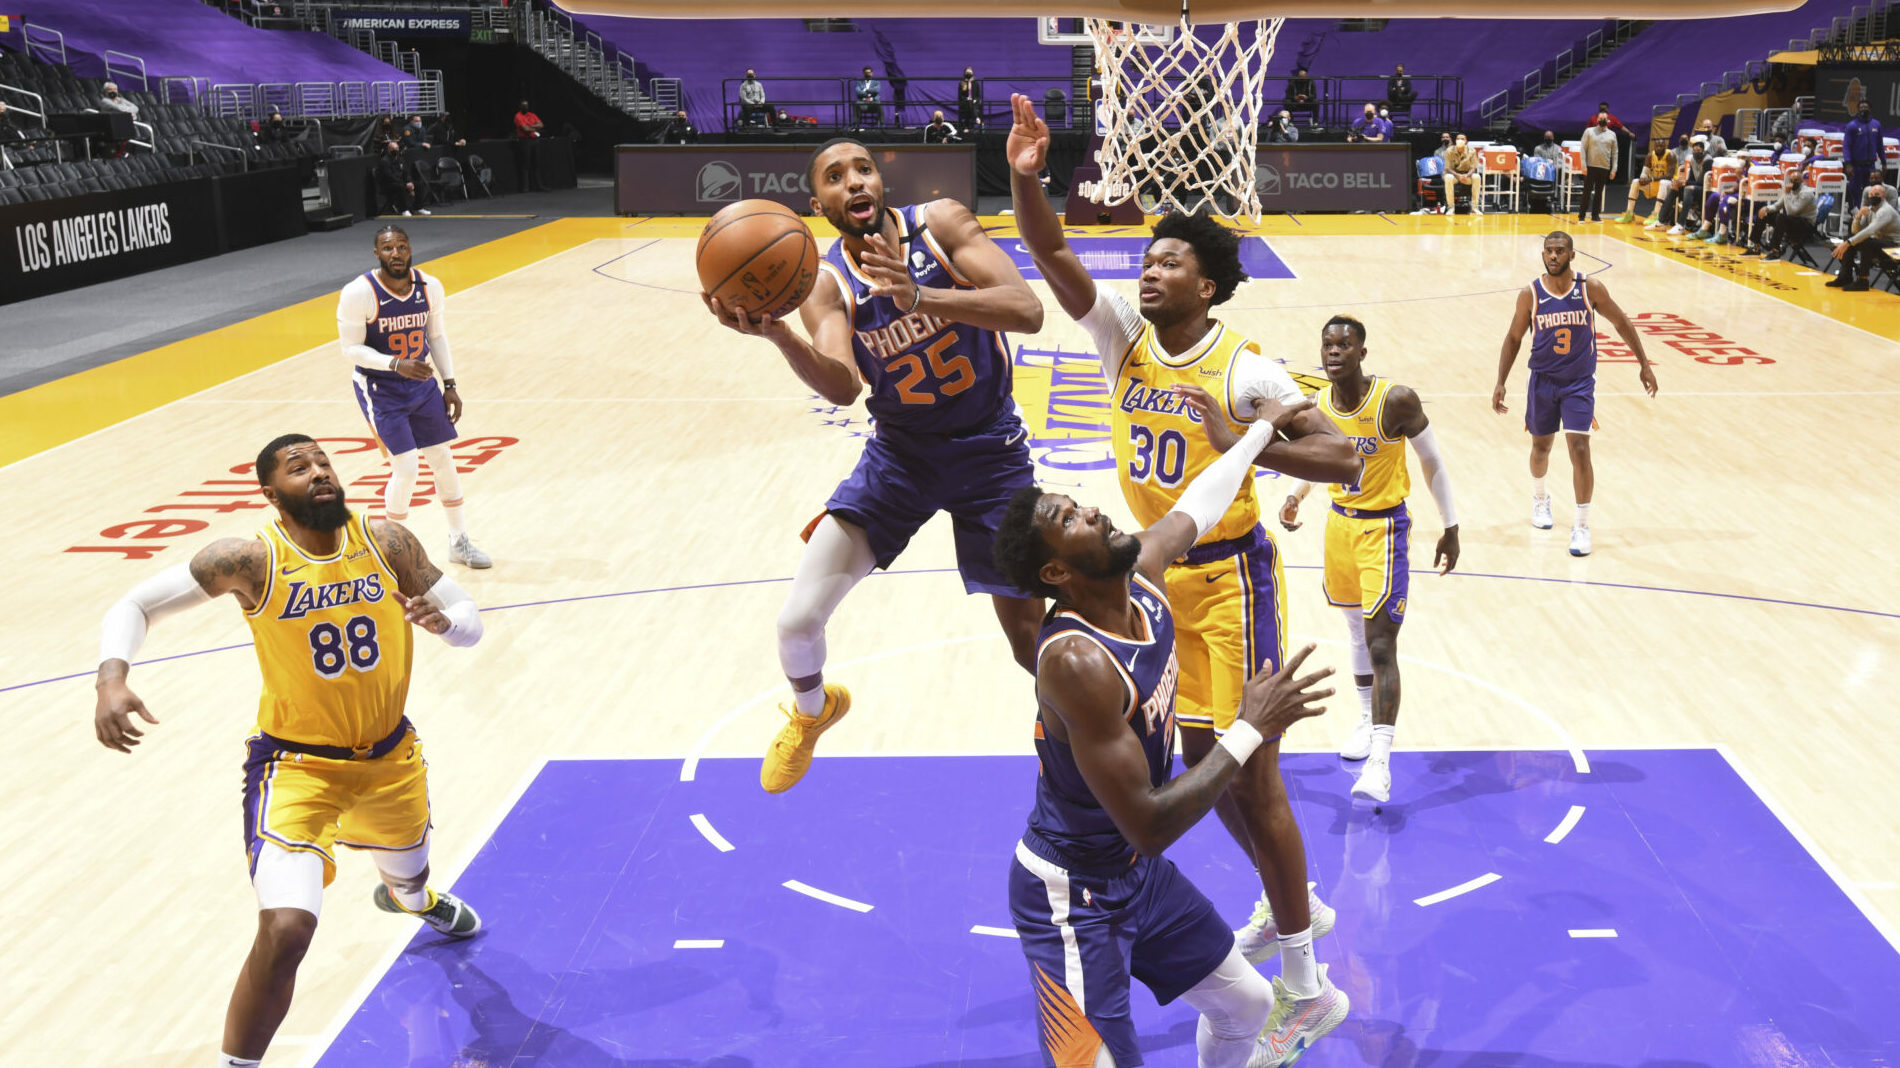 Suns make statement with win over Lakers